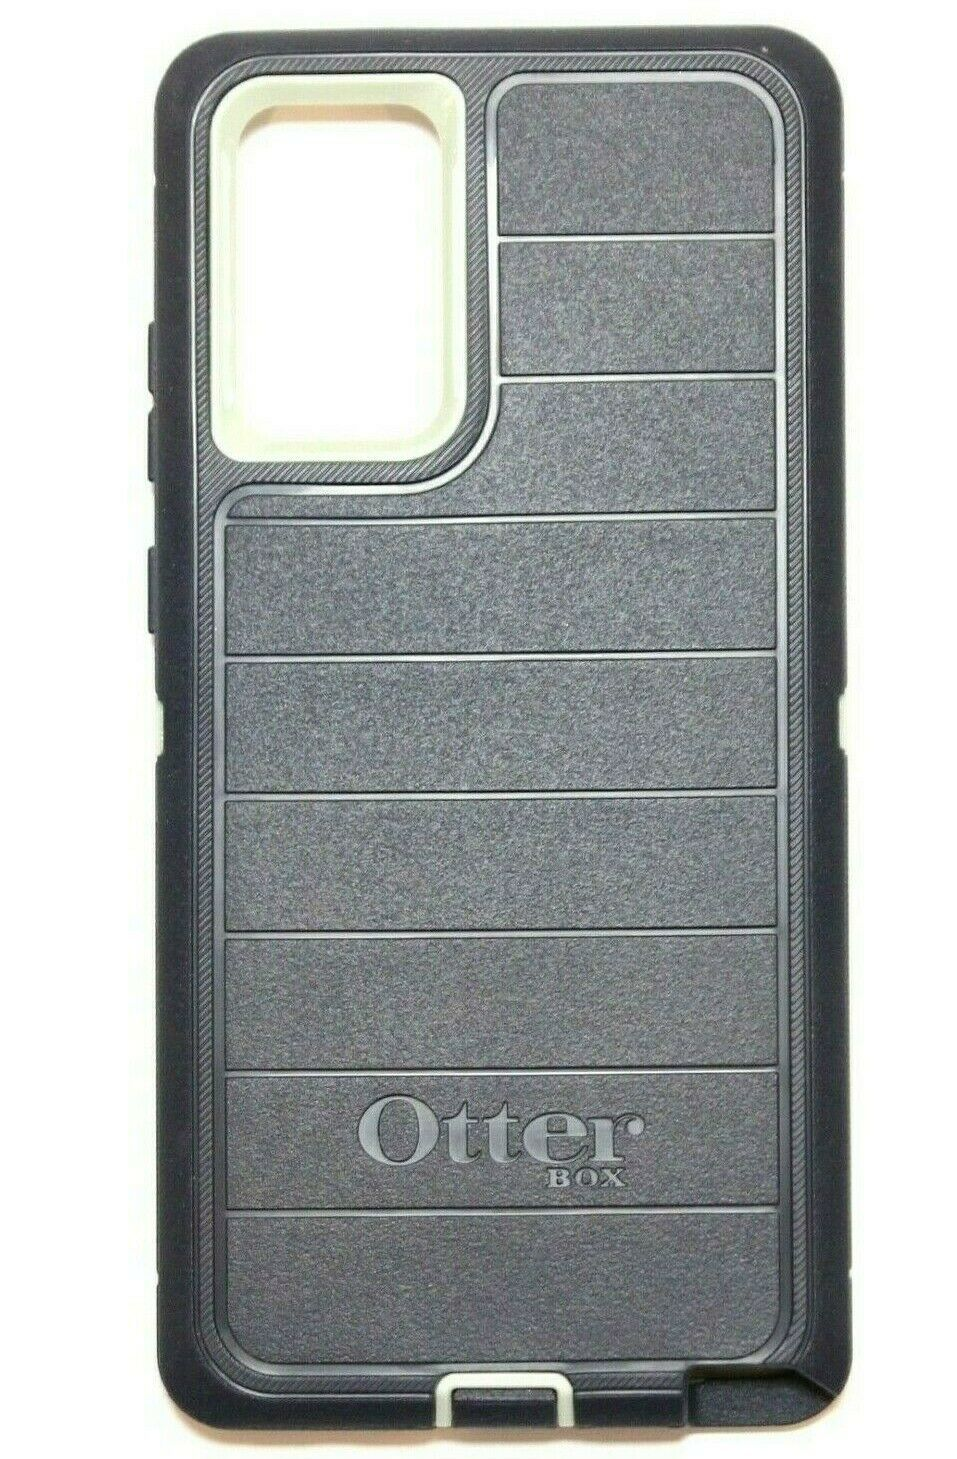 OtterBox Defender Pro Case for Galaxy Note 20 5G - Varsity Blues AUTHENTIC - $24.74